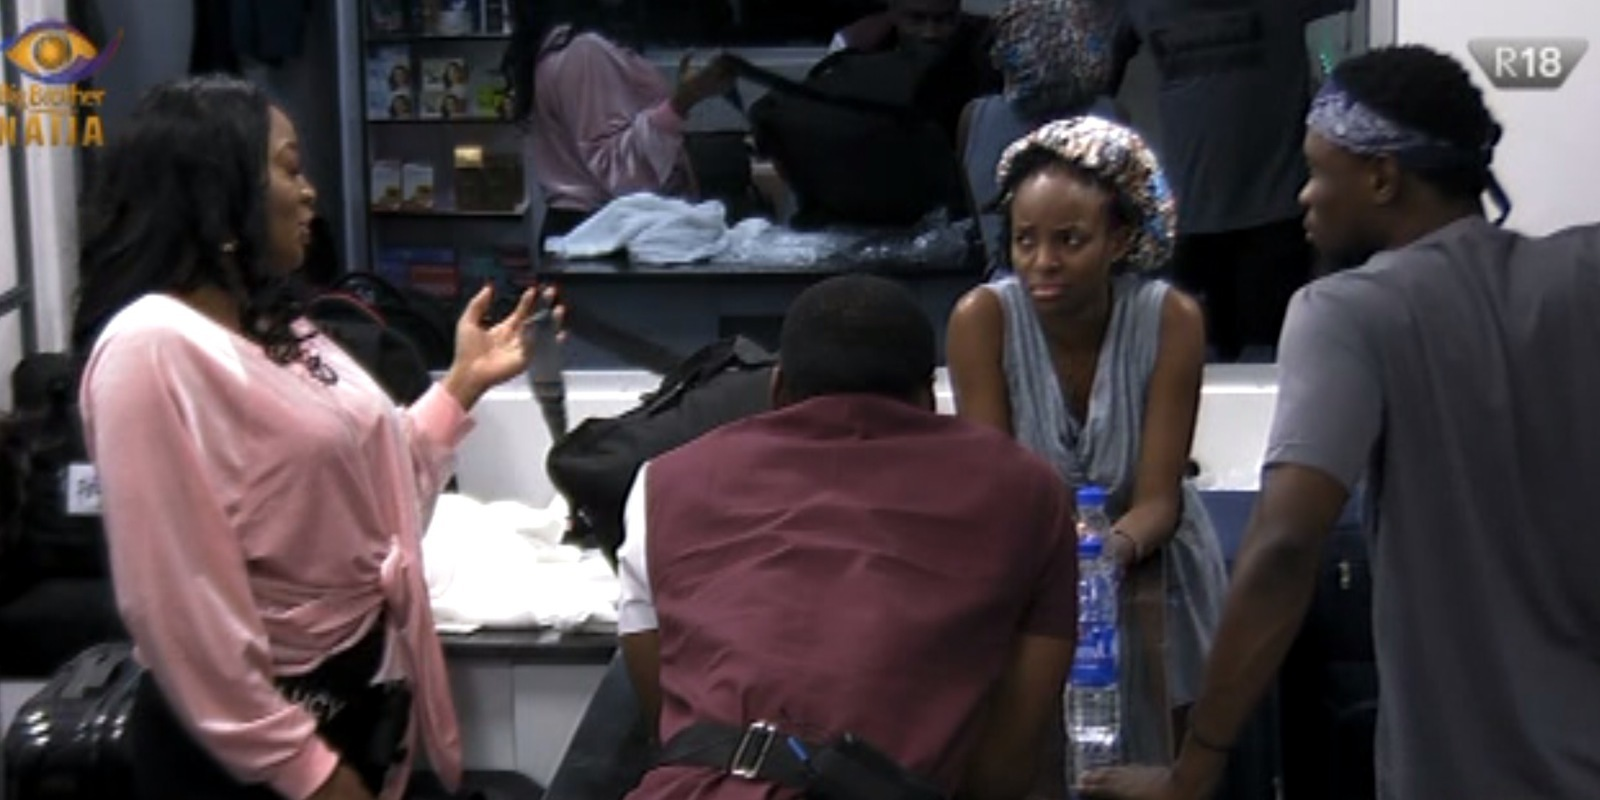 BBNaija Season 5 Day 29: Life after Eviction in Biggie's house